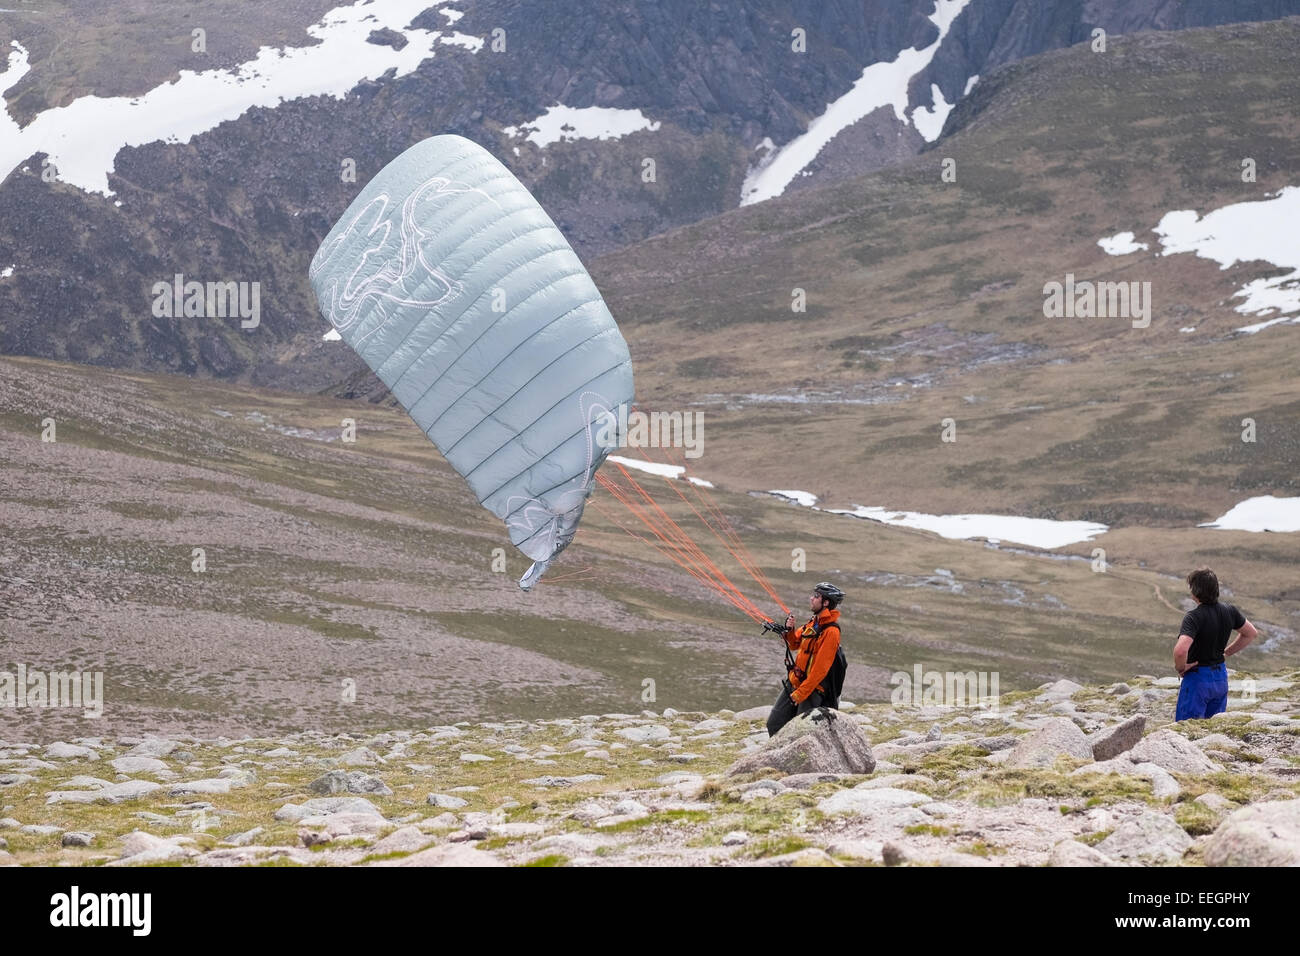 Paragliding from the top of Cairngorm mountain, Scotland. - Stock Image